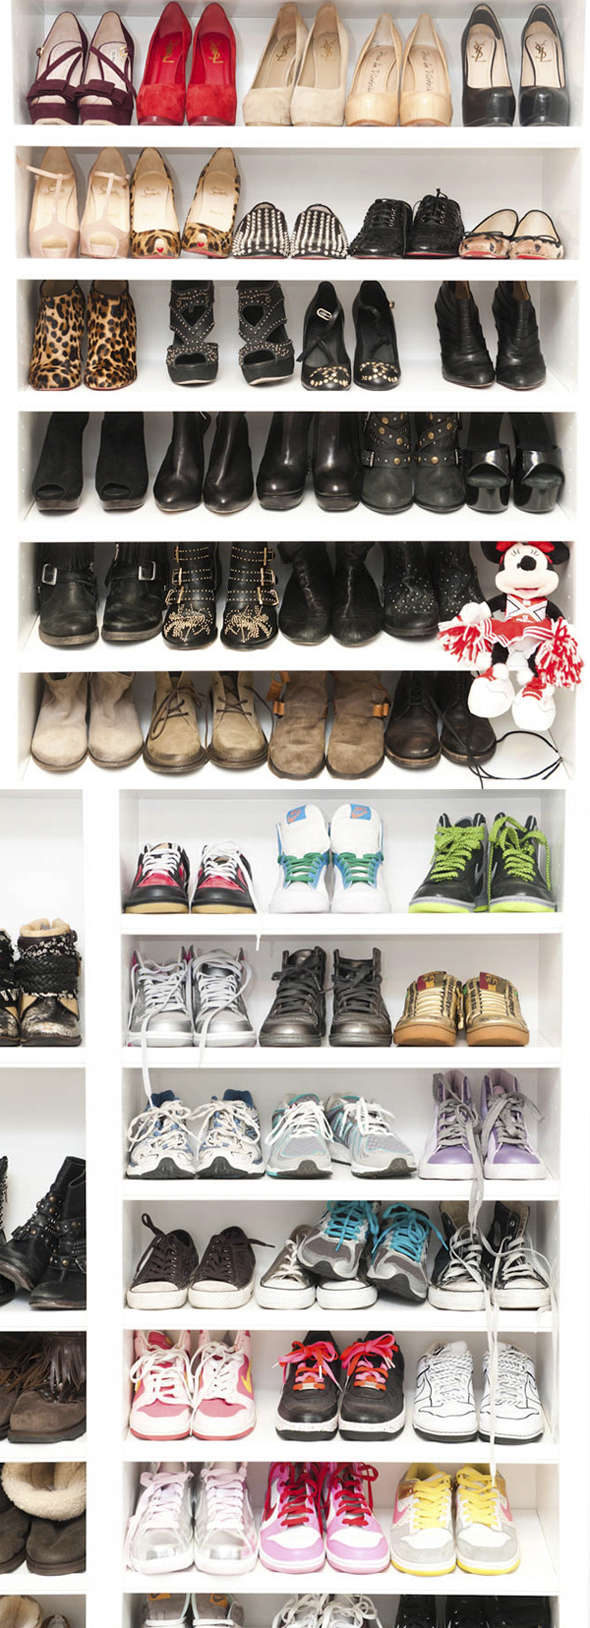 O Closet da Ashley Tisdale 2